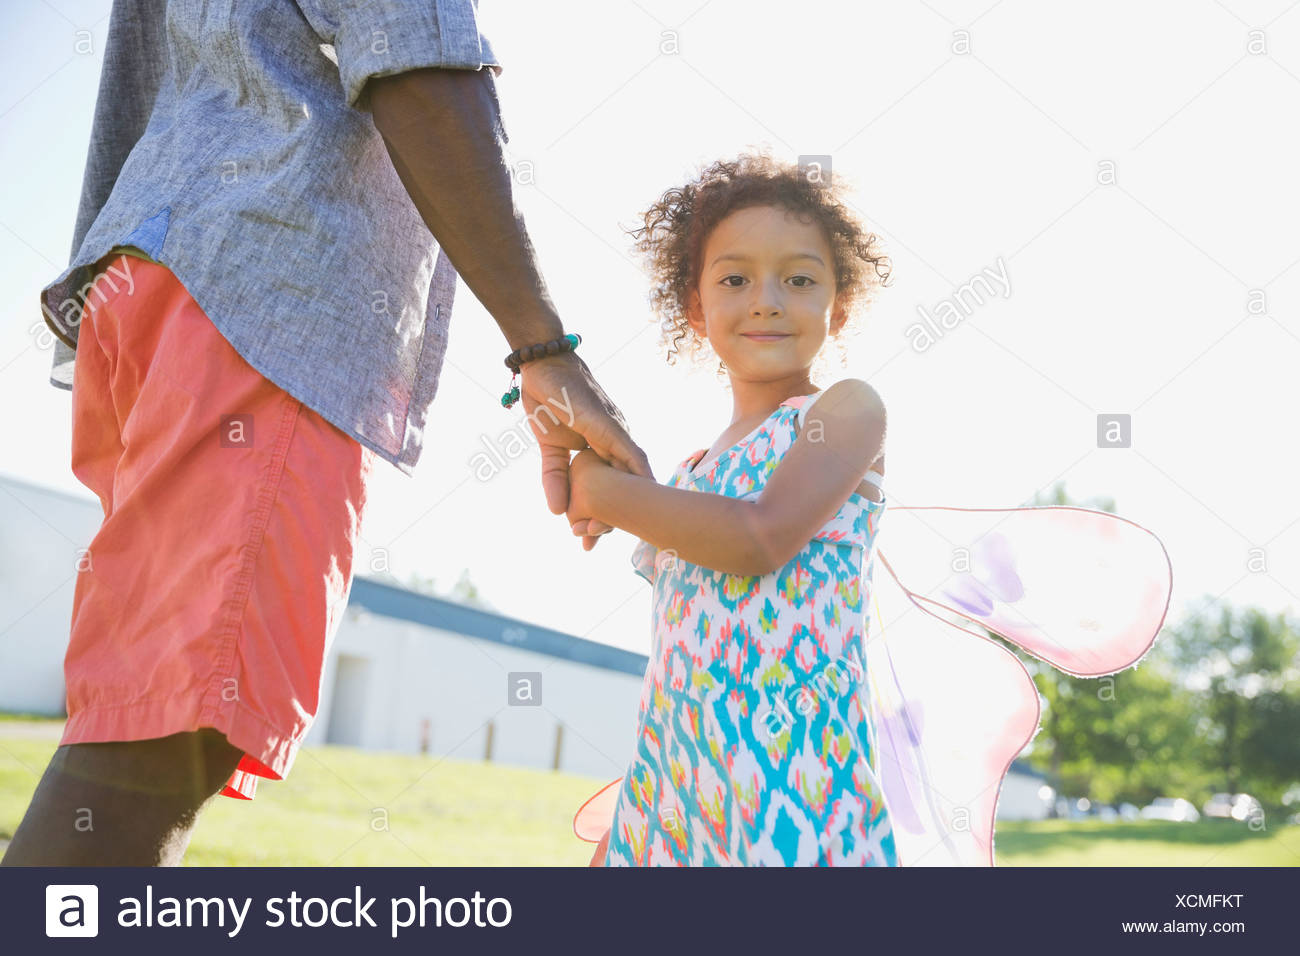 Portrait of cute girl holding fathers hand - Stock Image